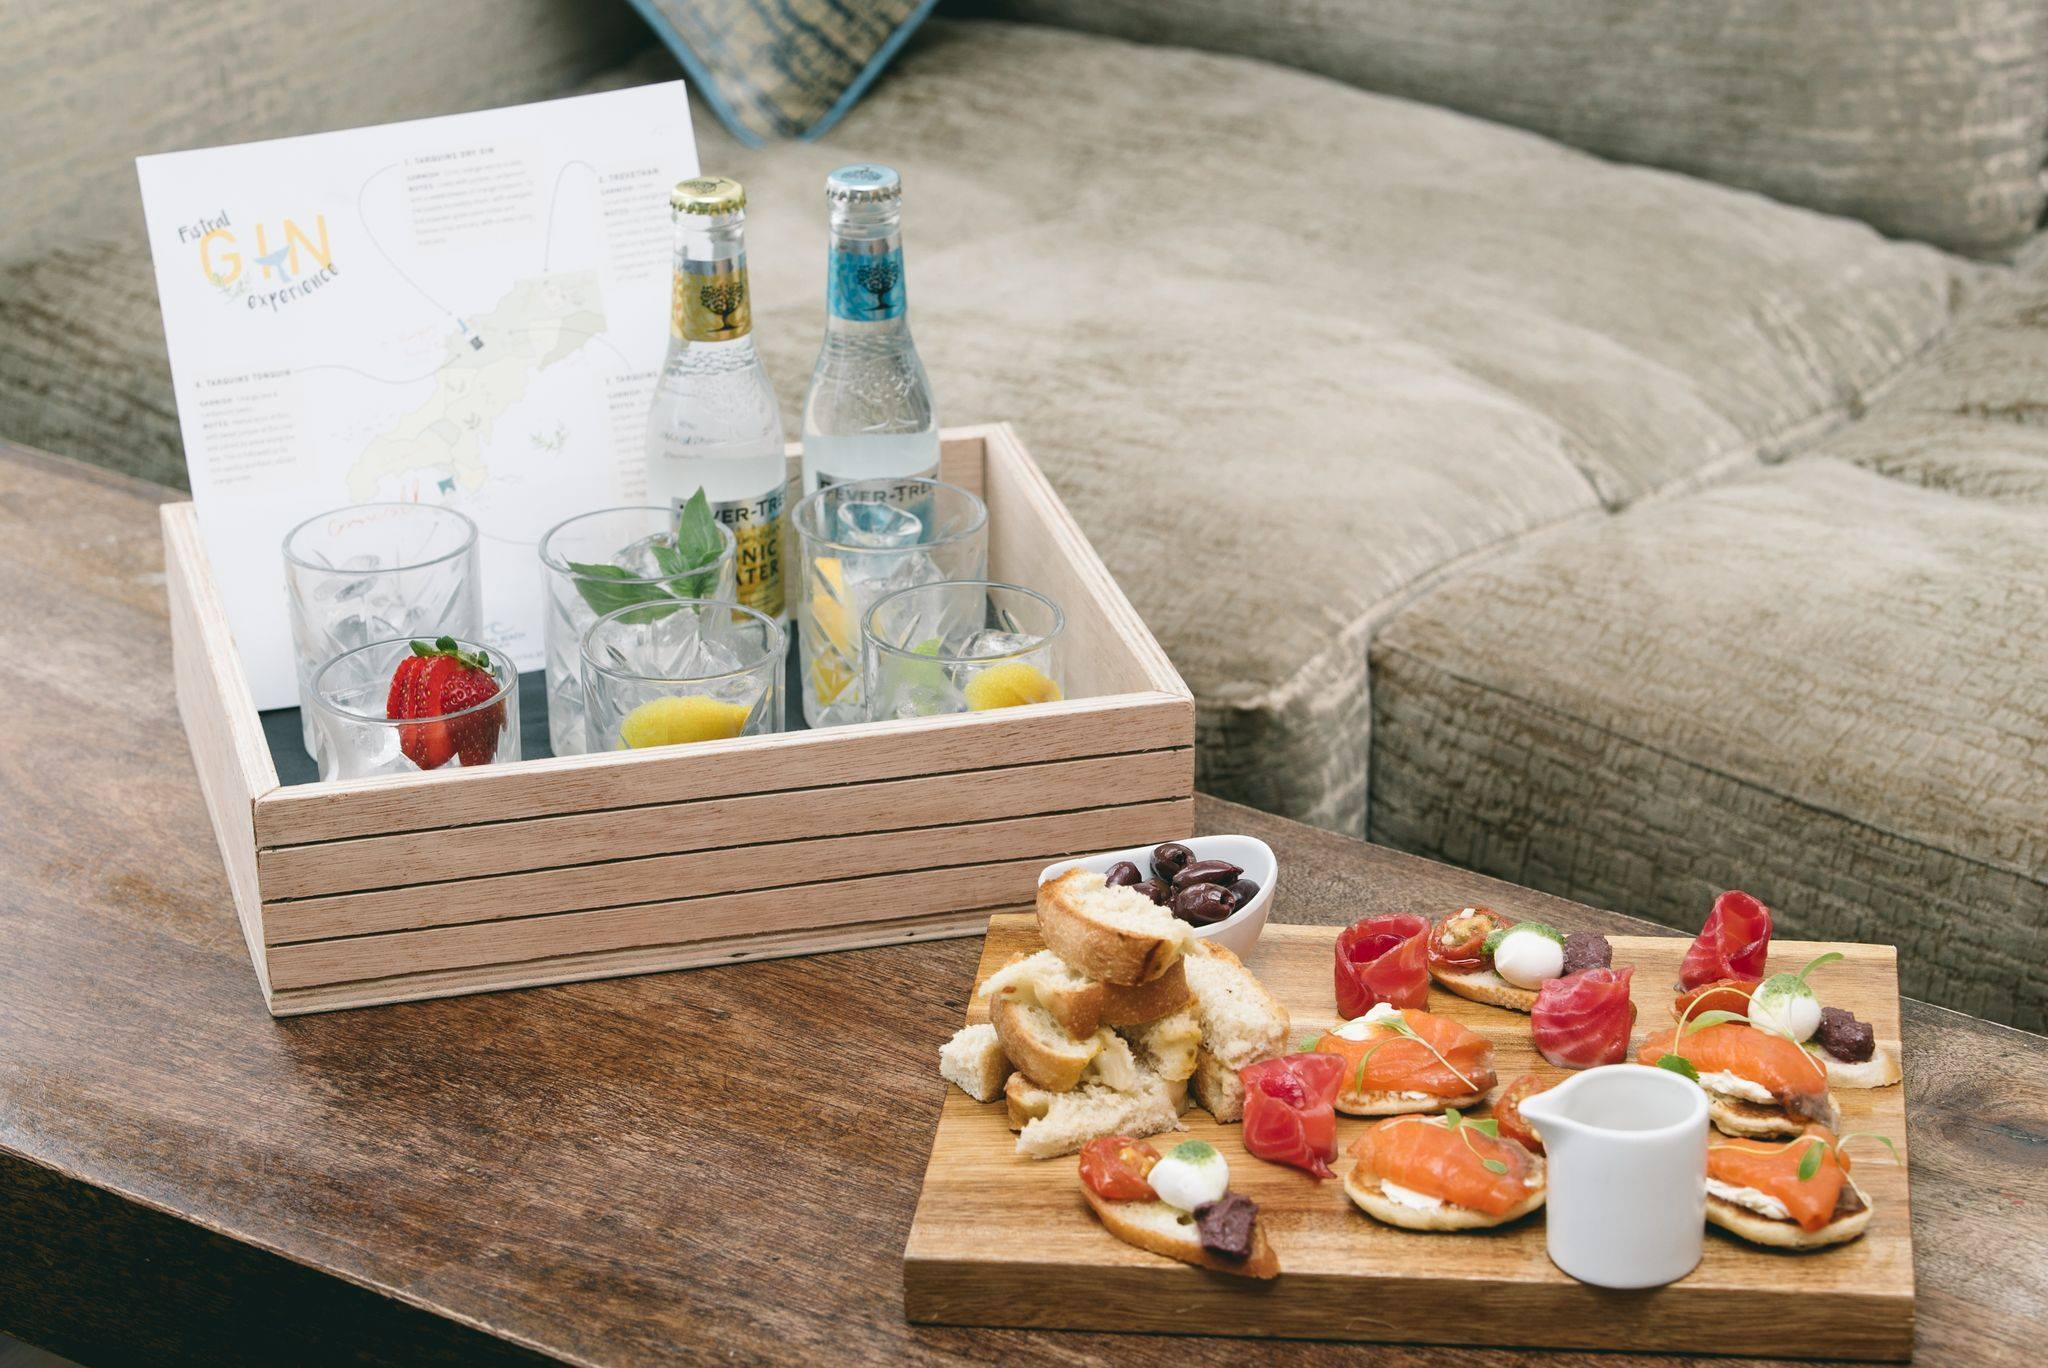 Fistral Beach Hotel and Spa Gin taster